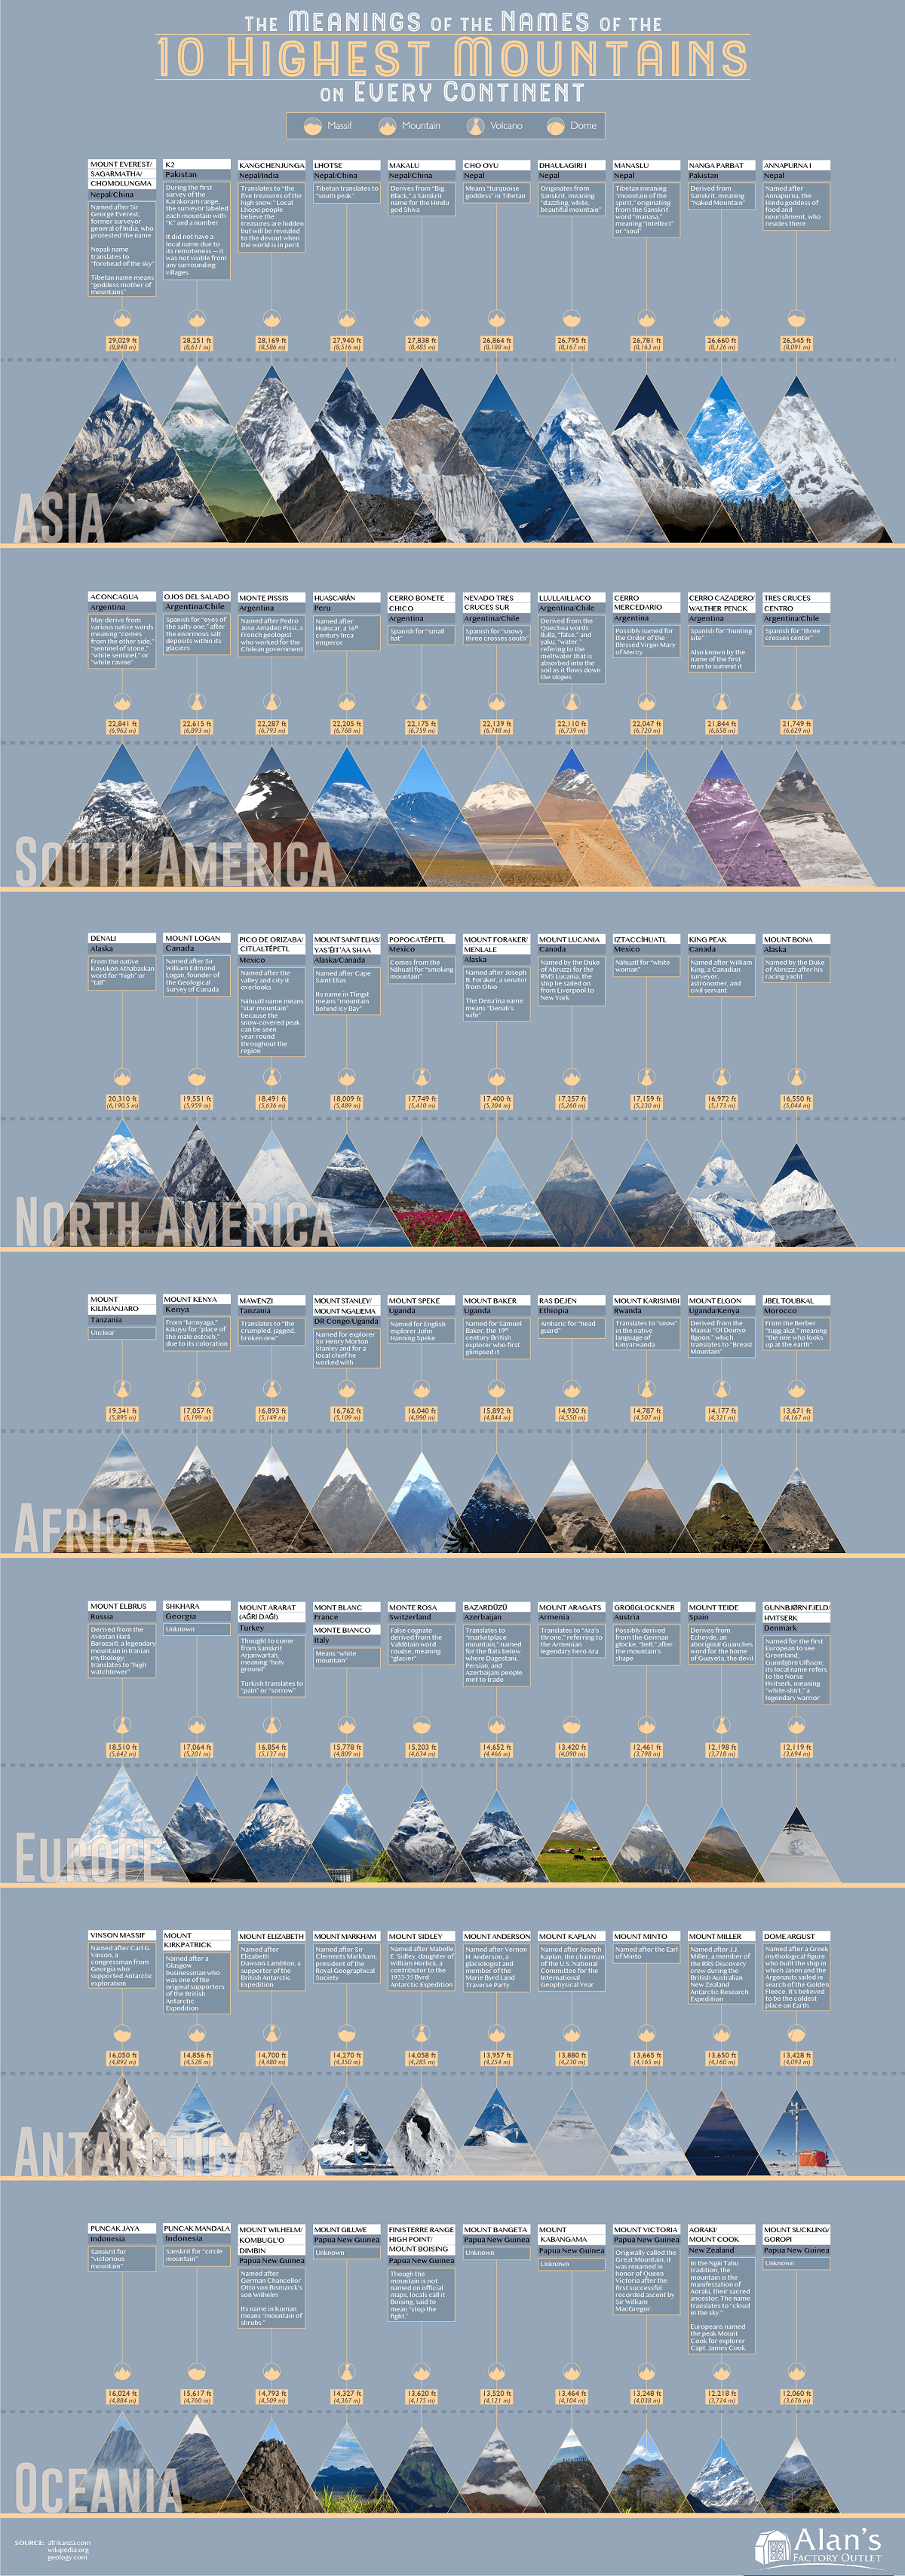 The Meanings of the Names of the 10 Highest Mountains on Every Continent #Infographic